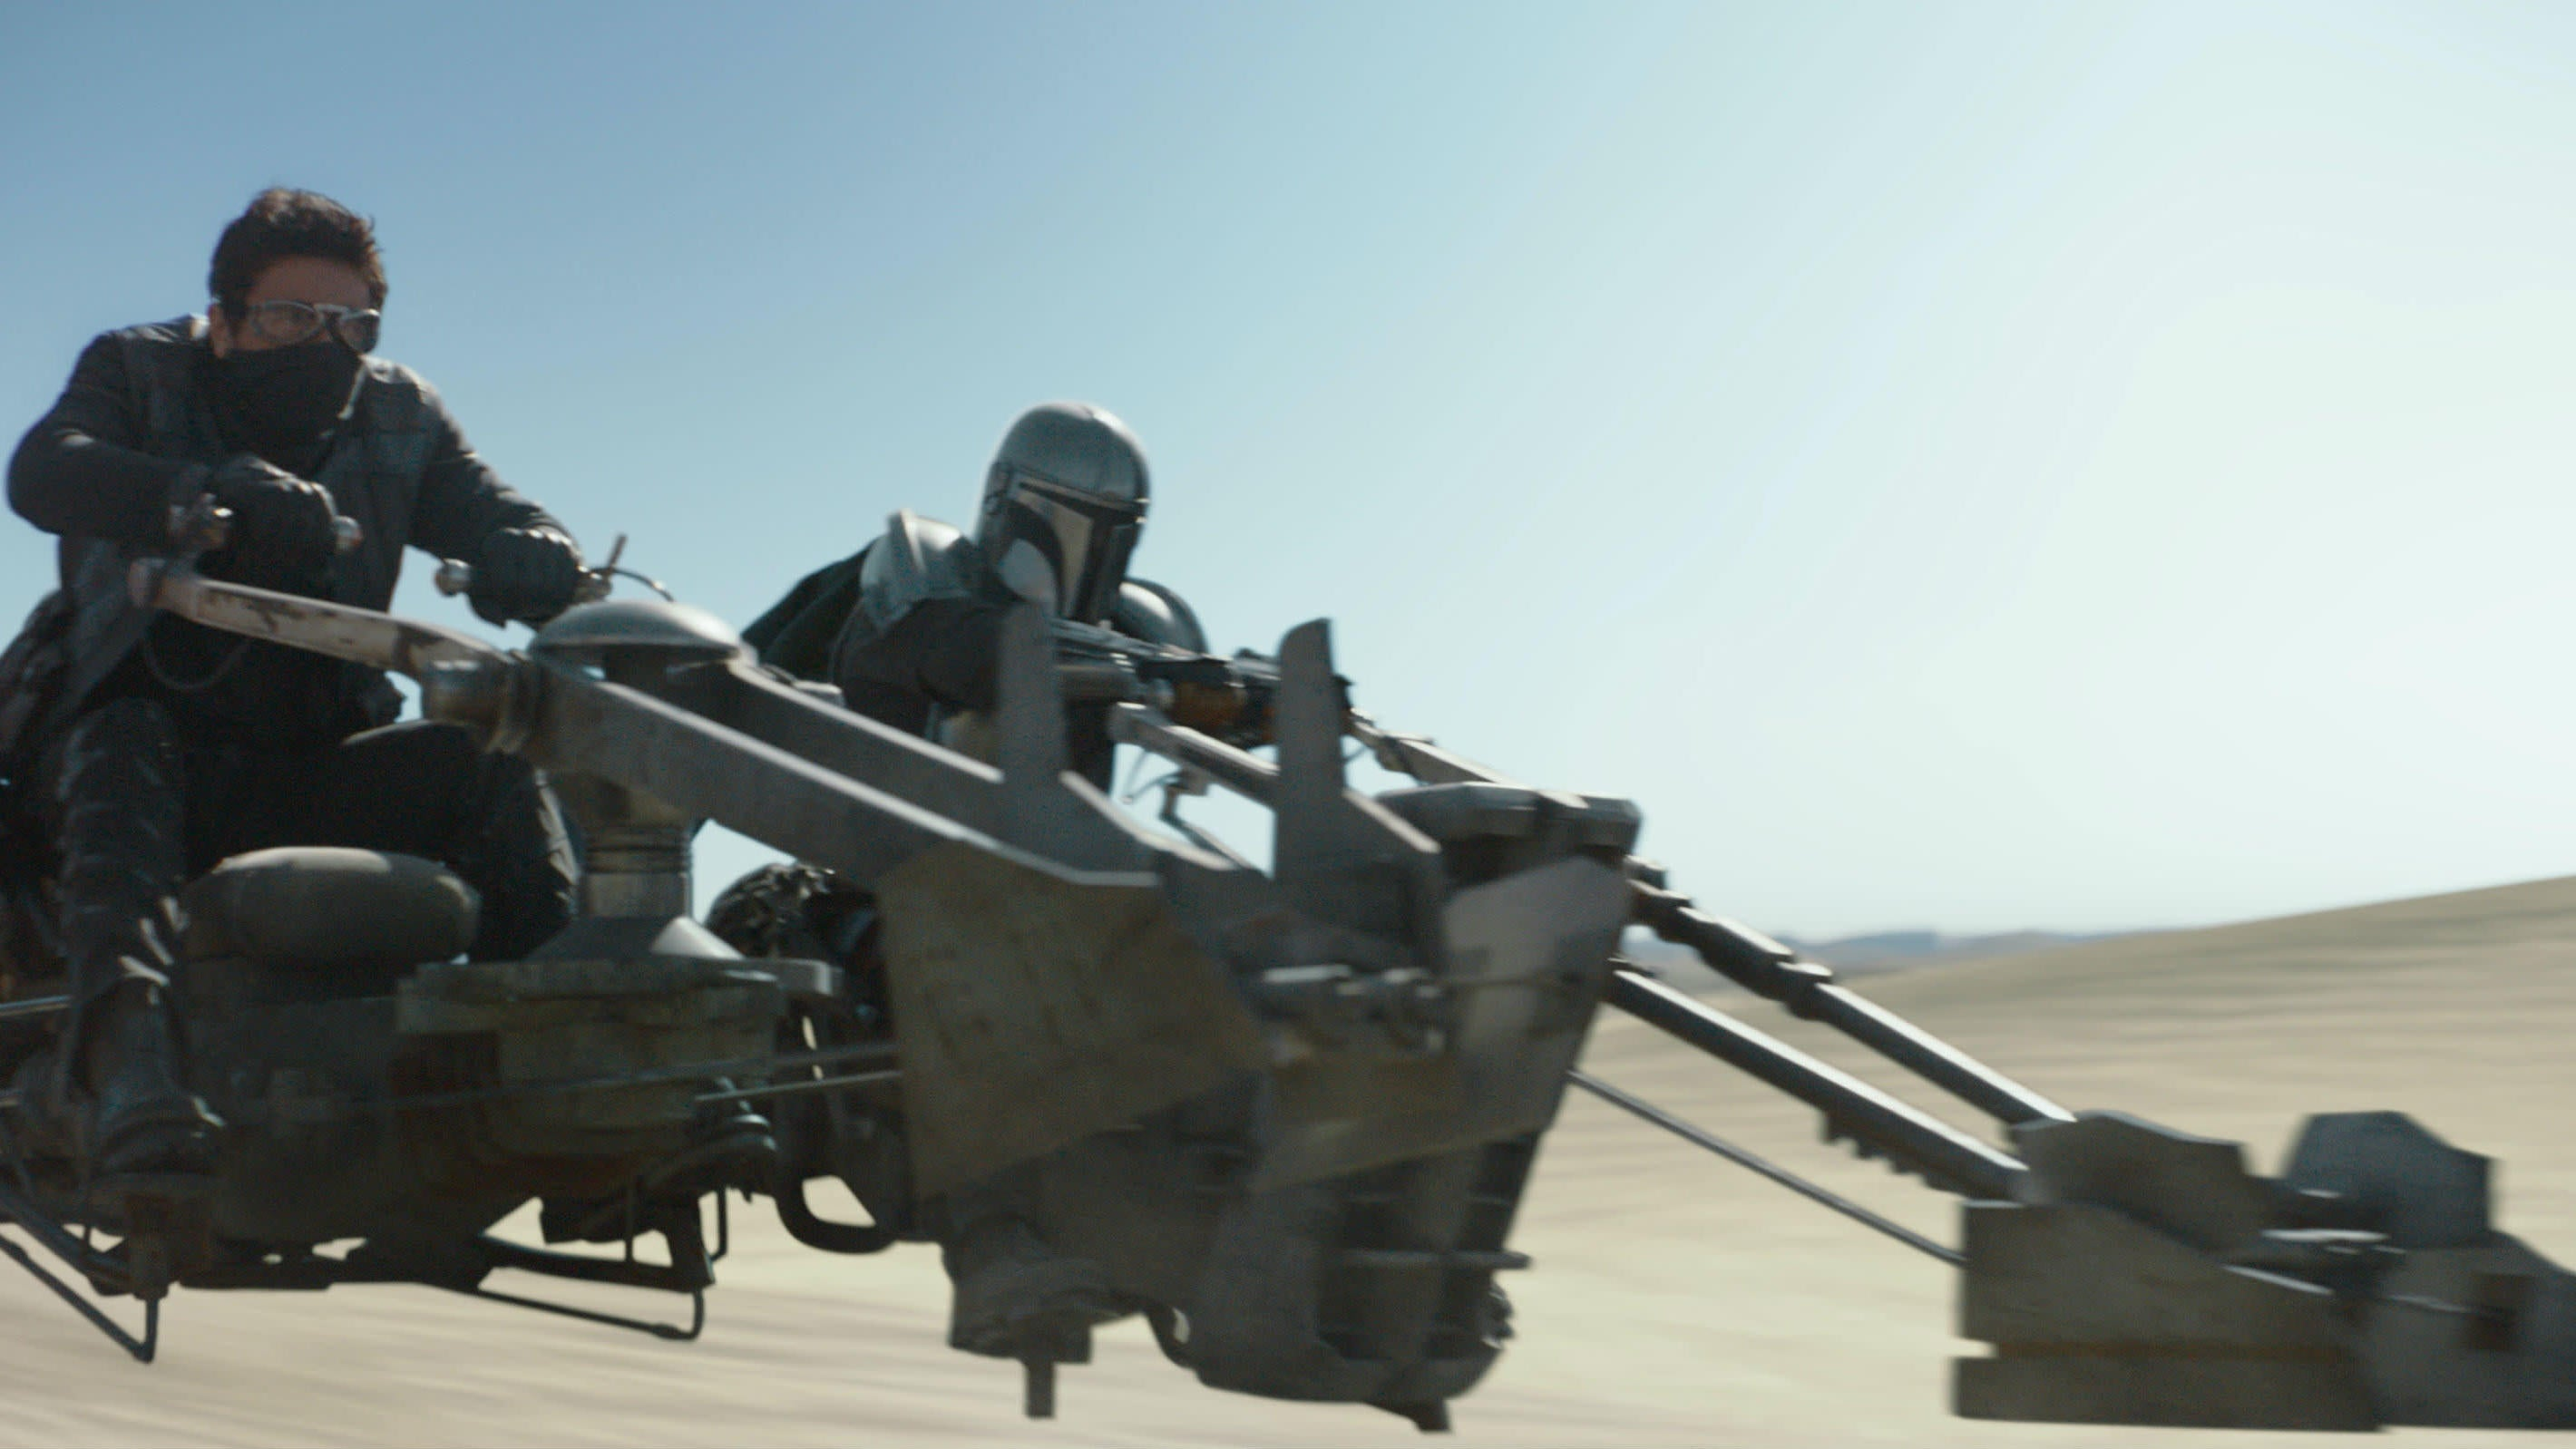 The Mandalorian Has An Awesome Behind The Scenes Link To The Original Star Wars